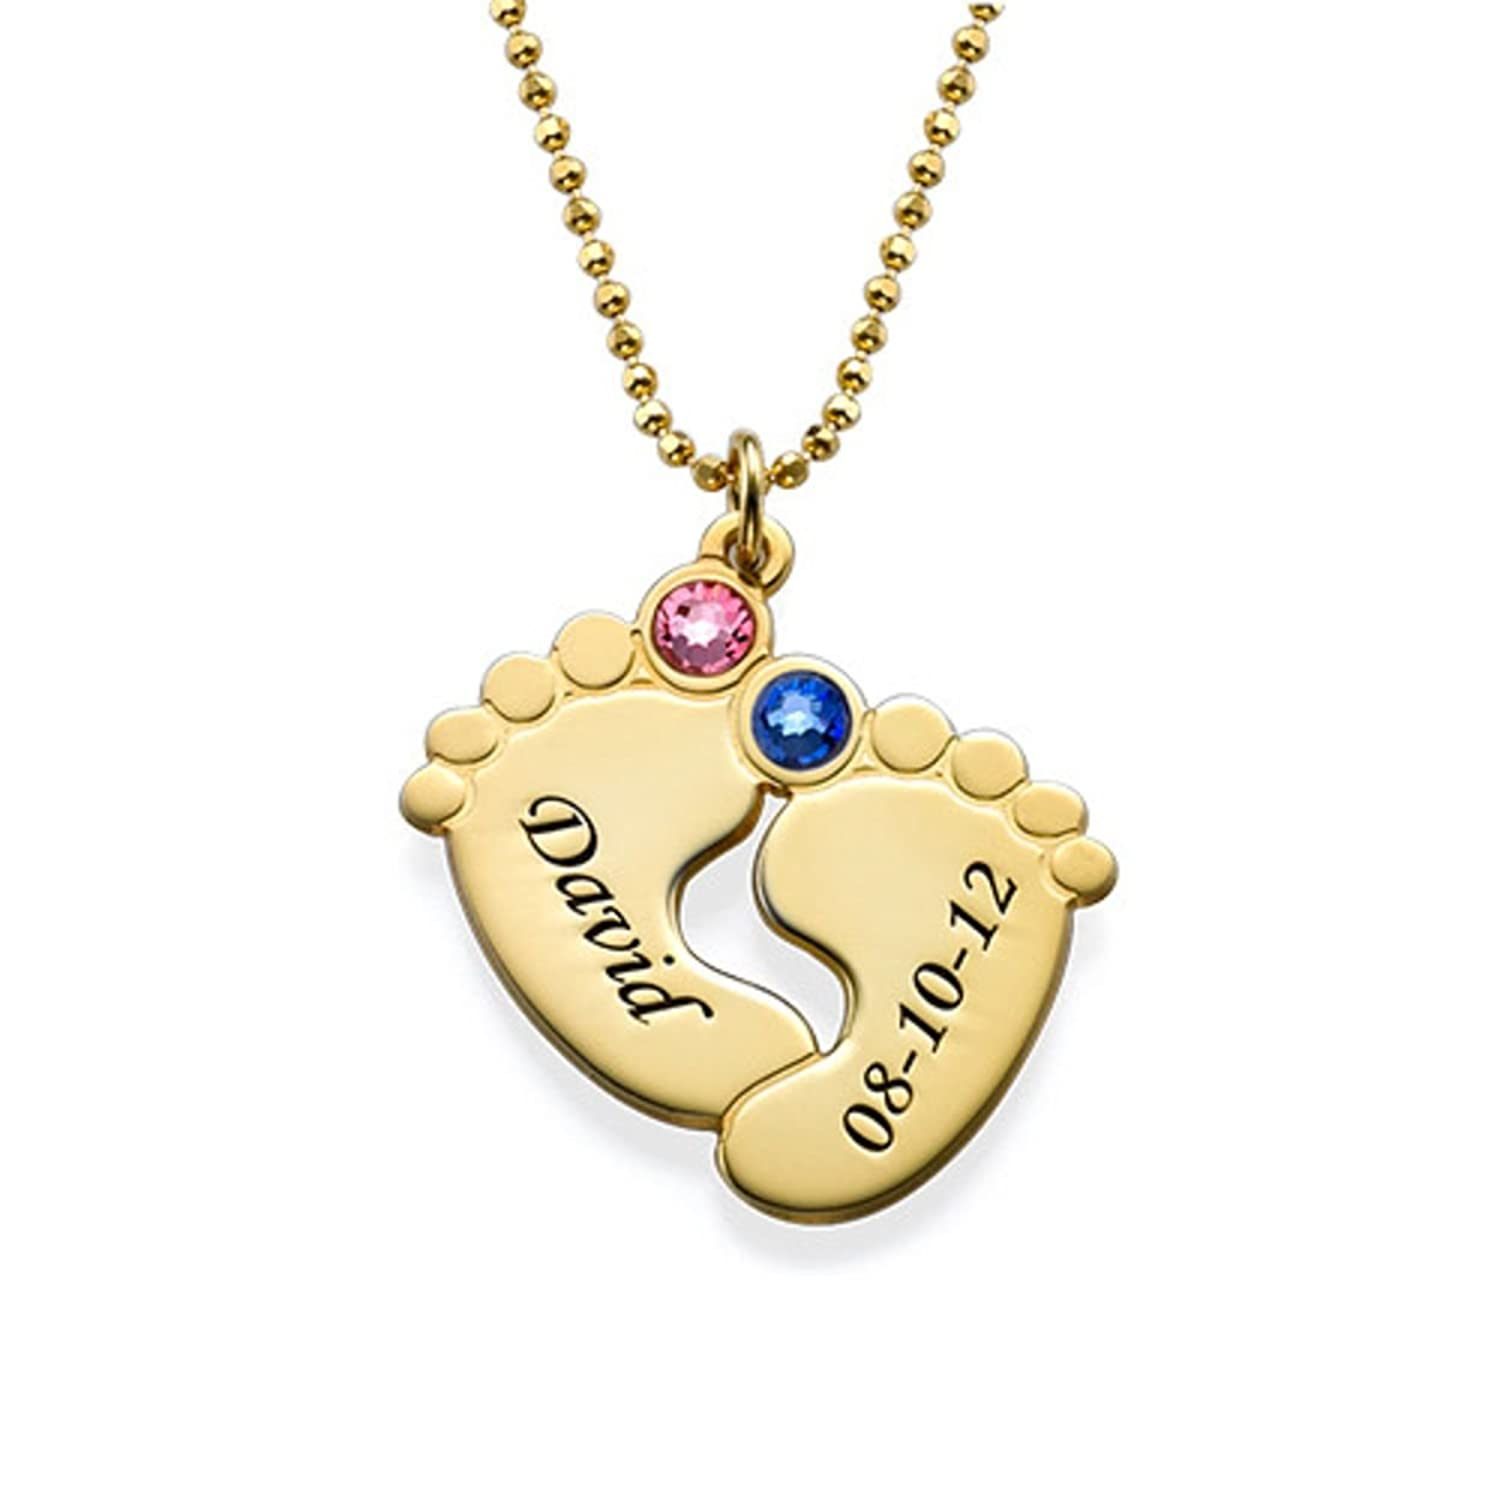 Mother Jewelry - Personalized Engraved Baby Feet Pendant with Birthstones - Custom Made Necklace with Any Name